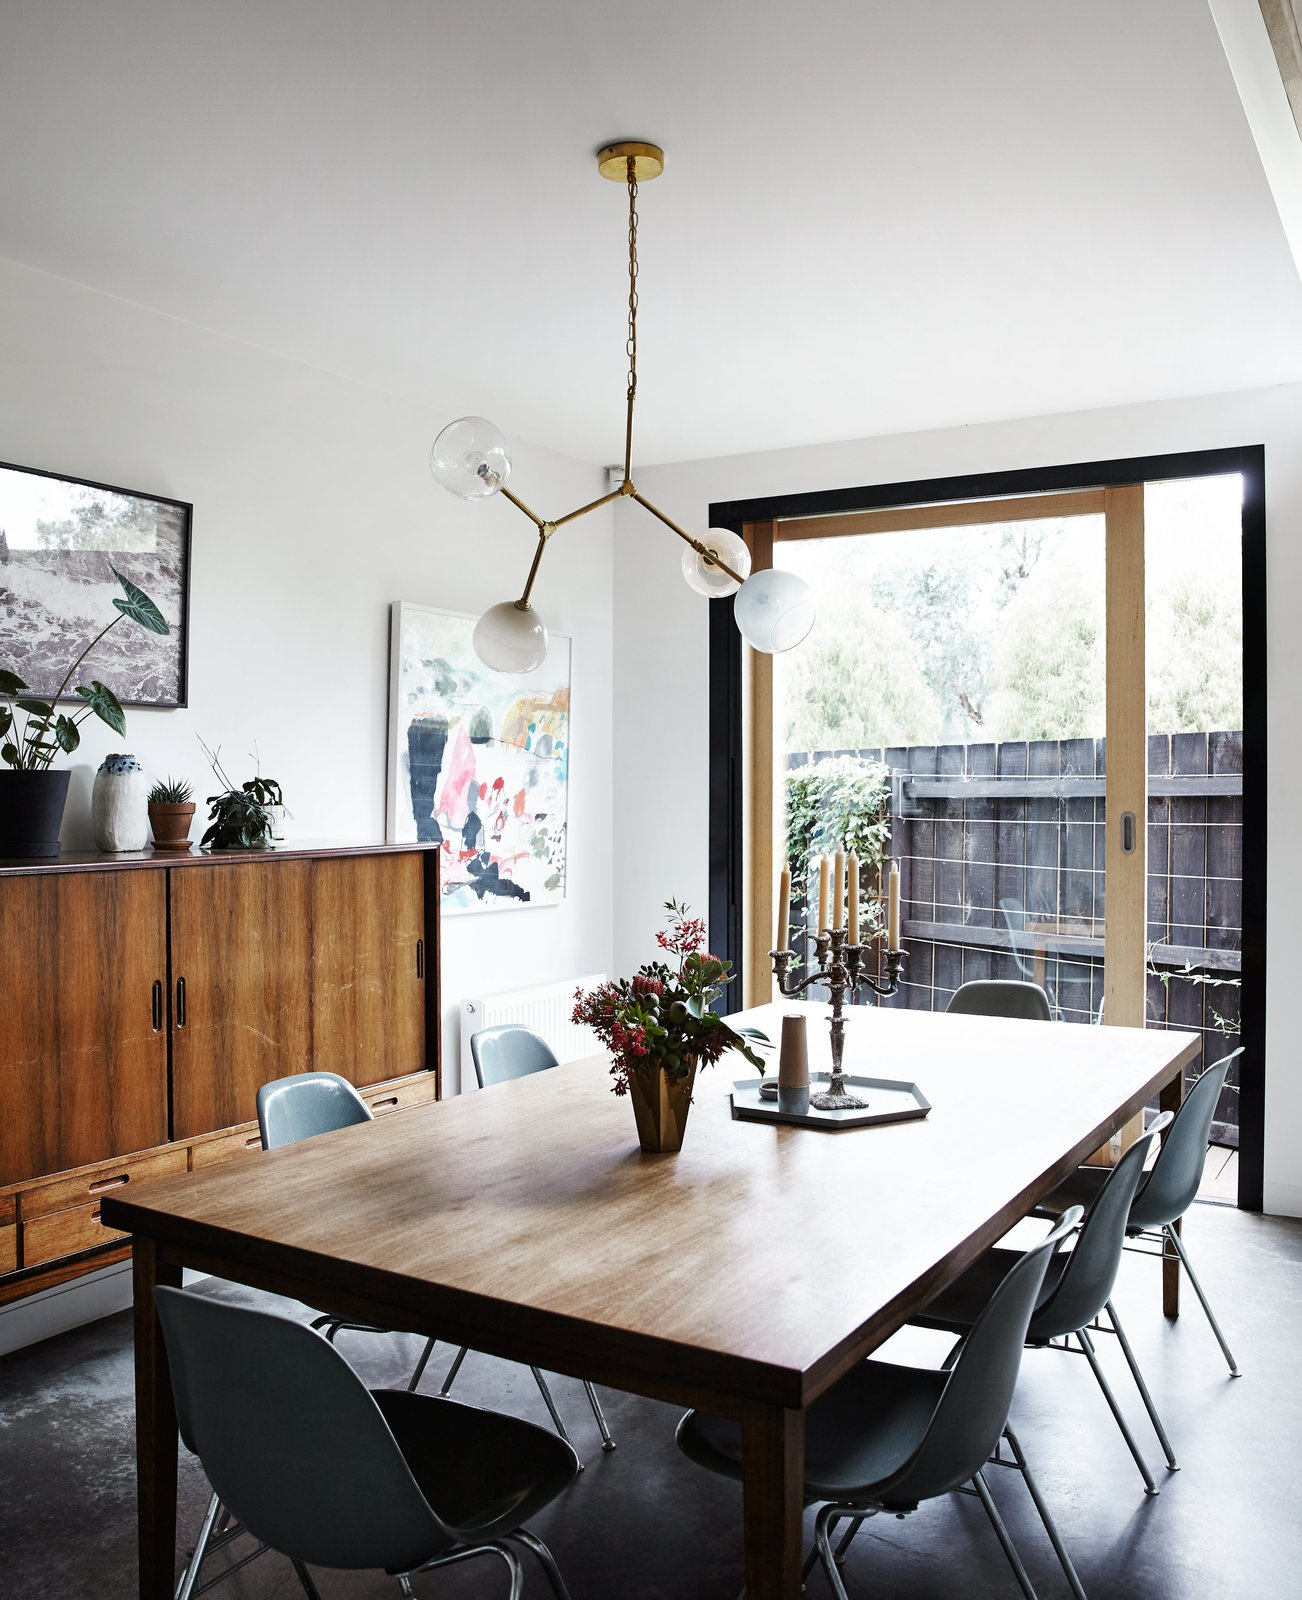 Dining Room, Pendant Lighting, Chair, Table, and Ceiling Lighting A Y chandelier by Douglas and Bec hangs above a vintage table and chairs.  Photo 5 of 12 in An Unassuming Edwardian Saves the Best for Out Back